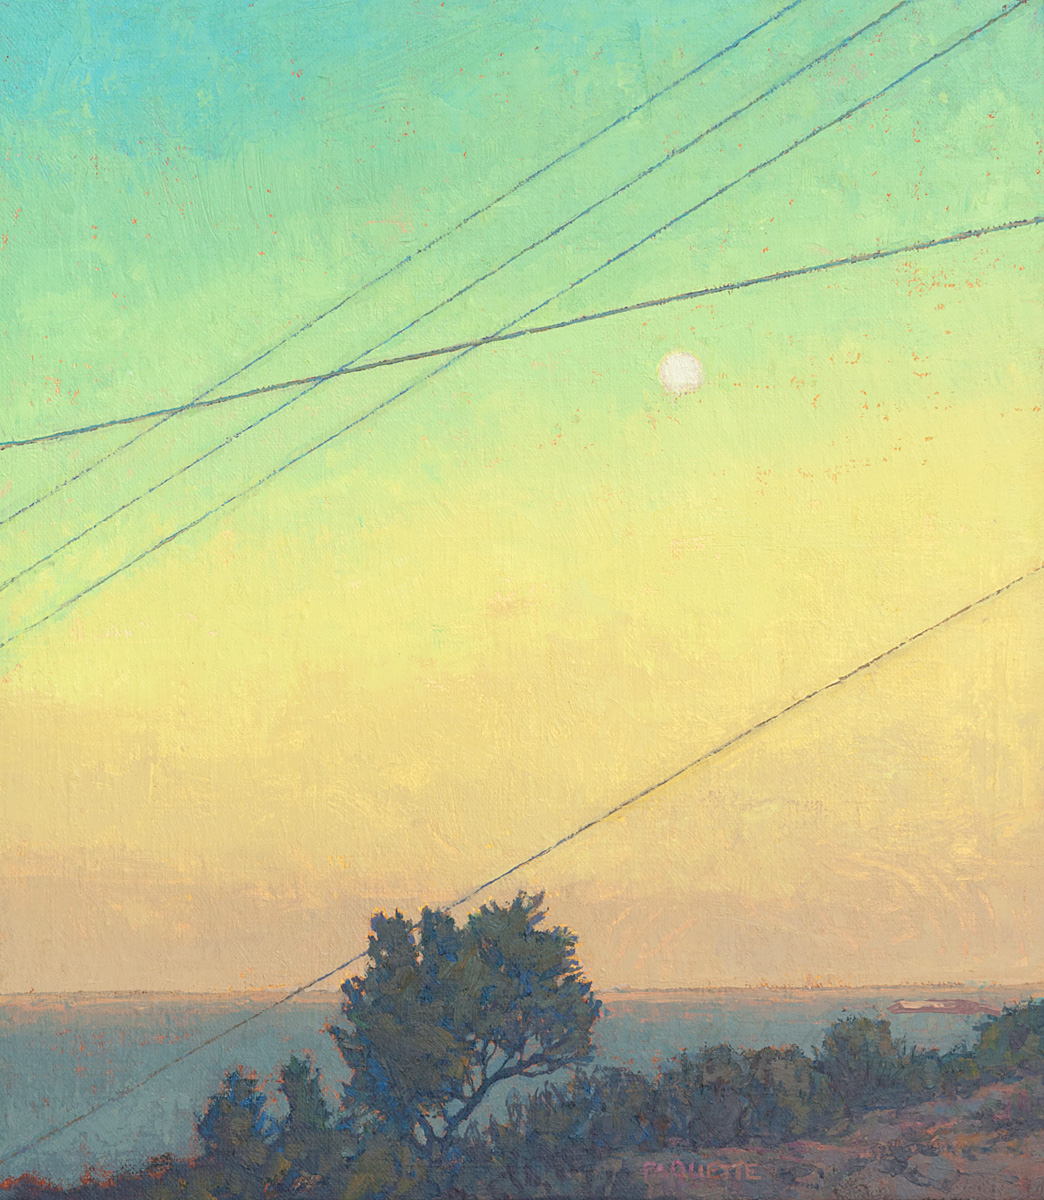 contemporary landscape oil painting by Thomas Paquette of moonrise on the island of Samos, Greece